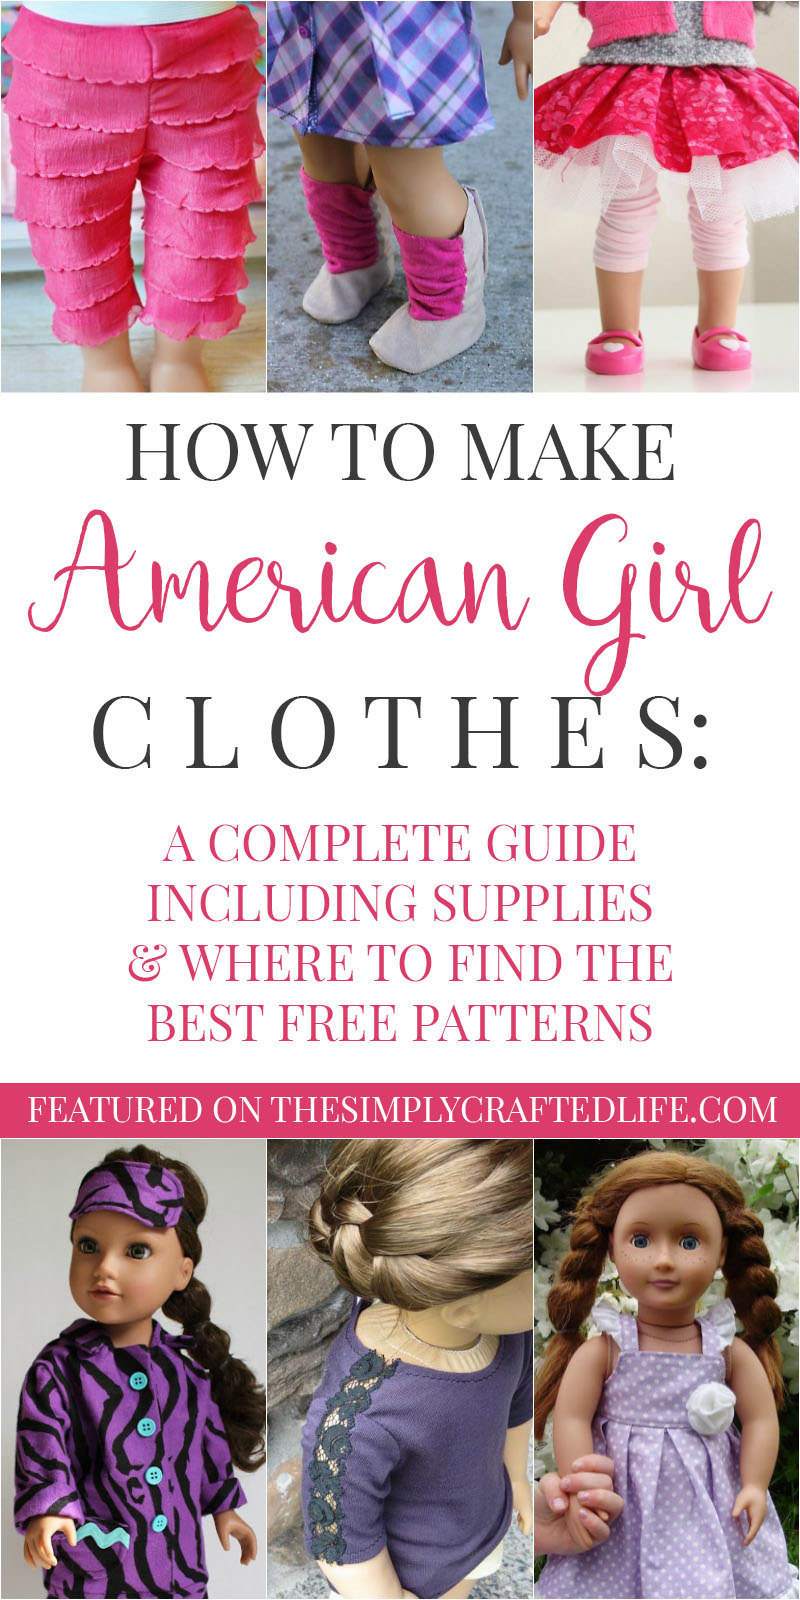 photograph relating to 18 Inch Doll Clothes Patterns Free Printable referred to as How in direction of Generate American Lady Doll Apparel: A Expert towards Absolutely free AG